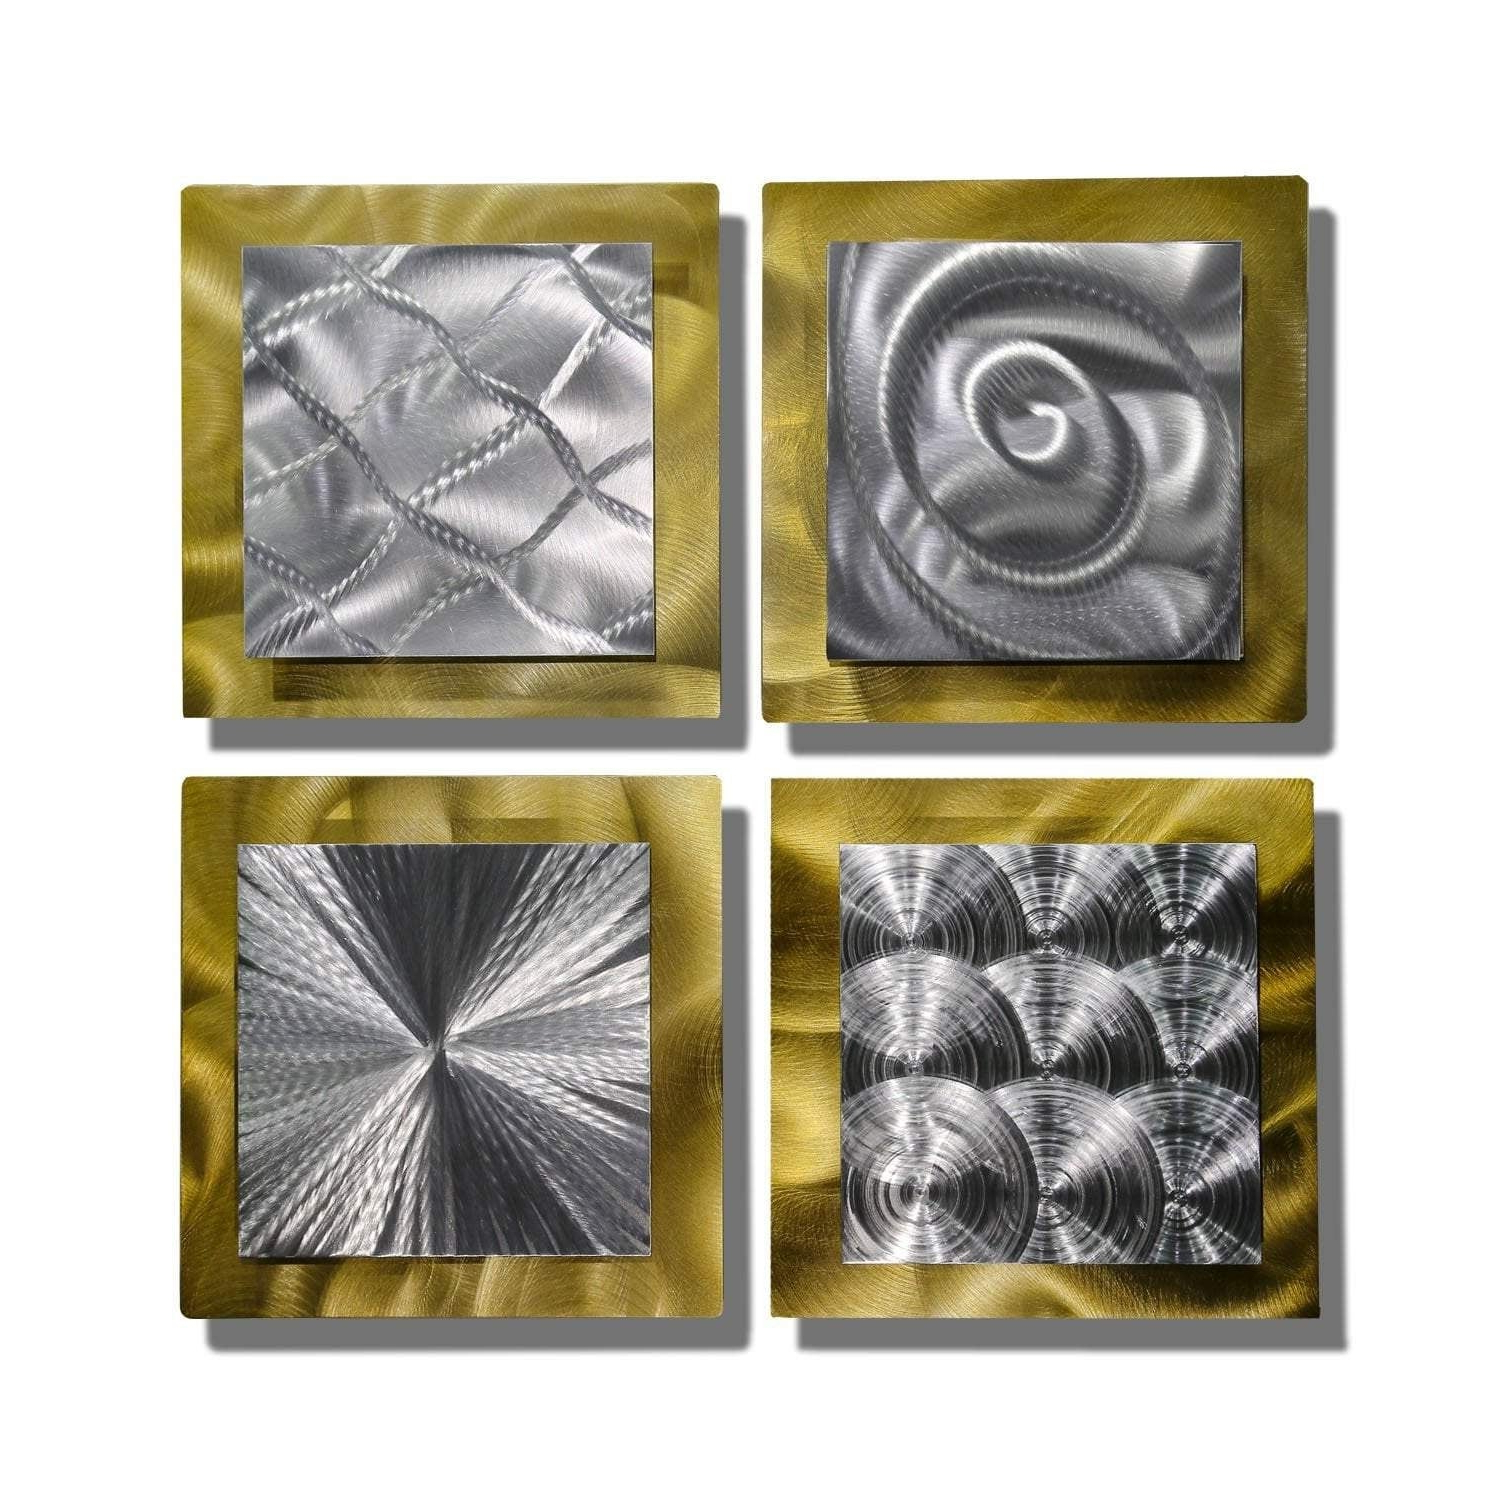 Find Great Art Gallery Deals Shopping At Overstock Throughout Well Known 4 Piece Metal Wall Decor Sets (View 8 of 20)